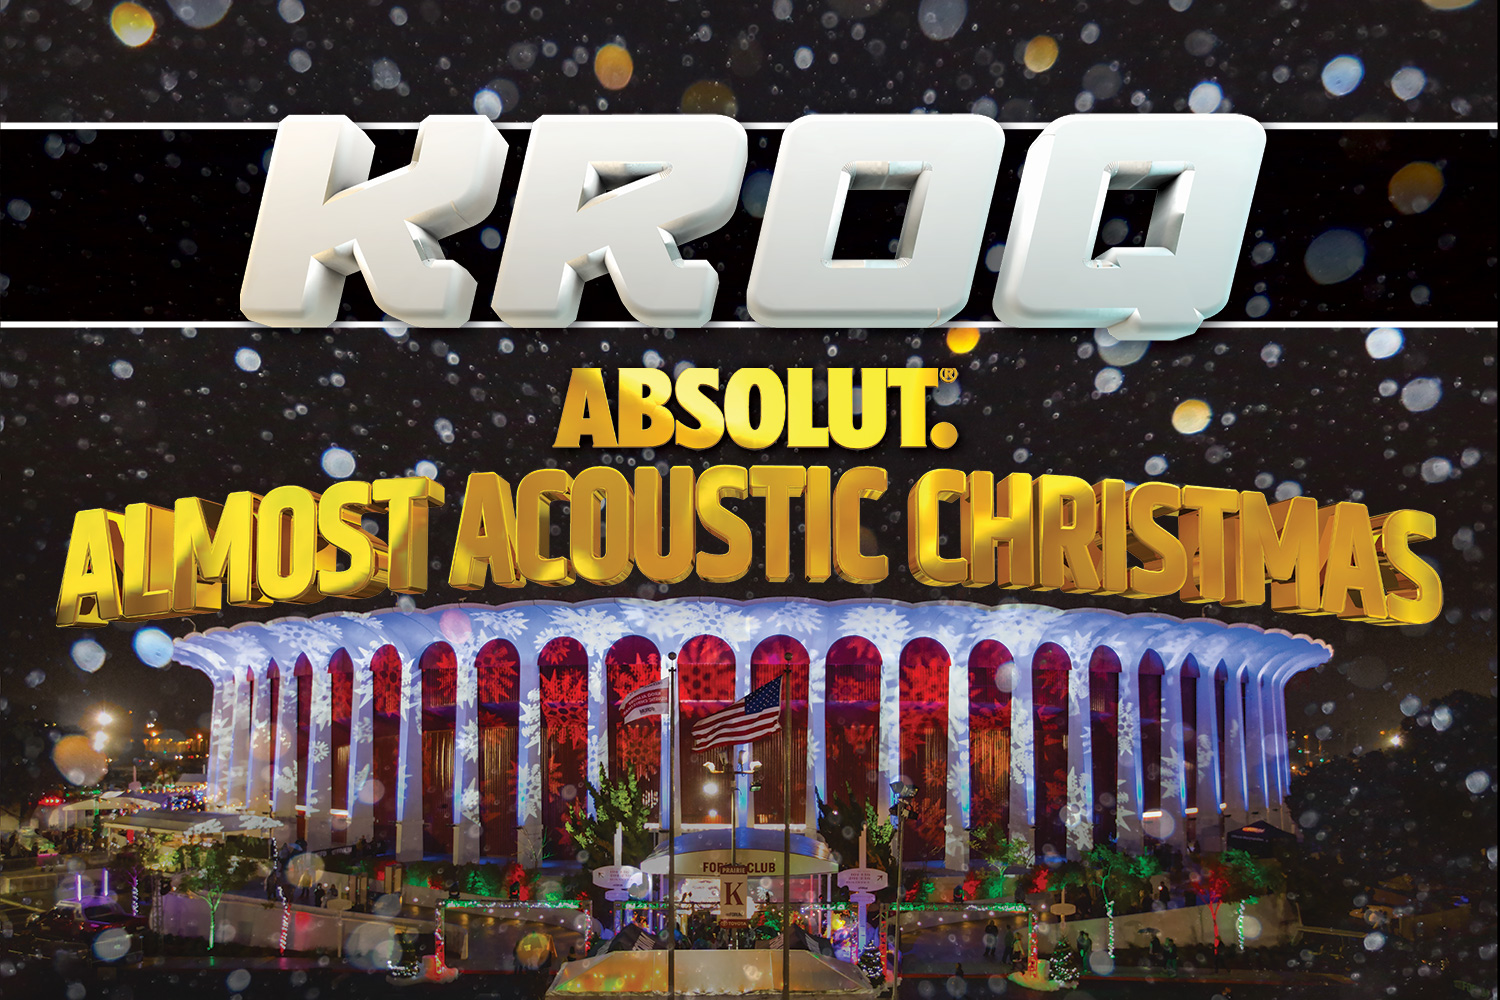 Kroq Almost Acoustic Christmas.Kroq Almost Acoustic Christmas 2018 Lineup The World